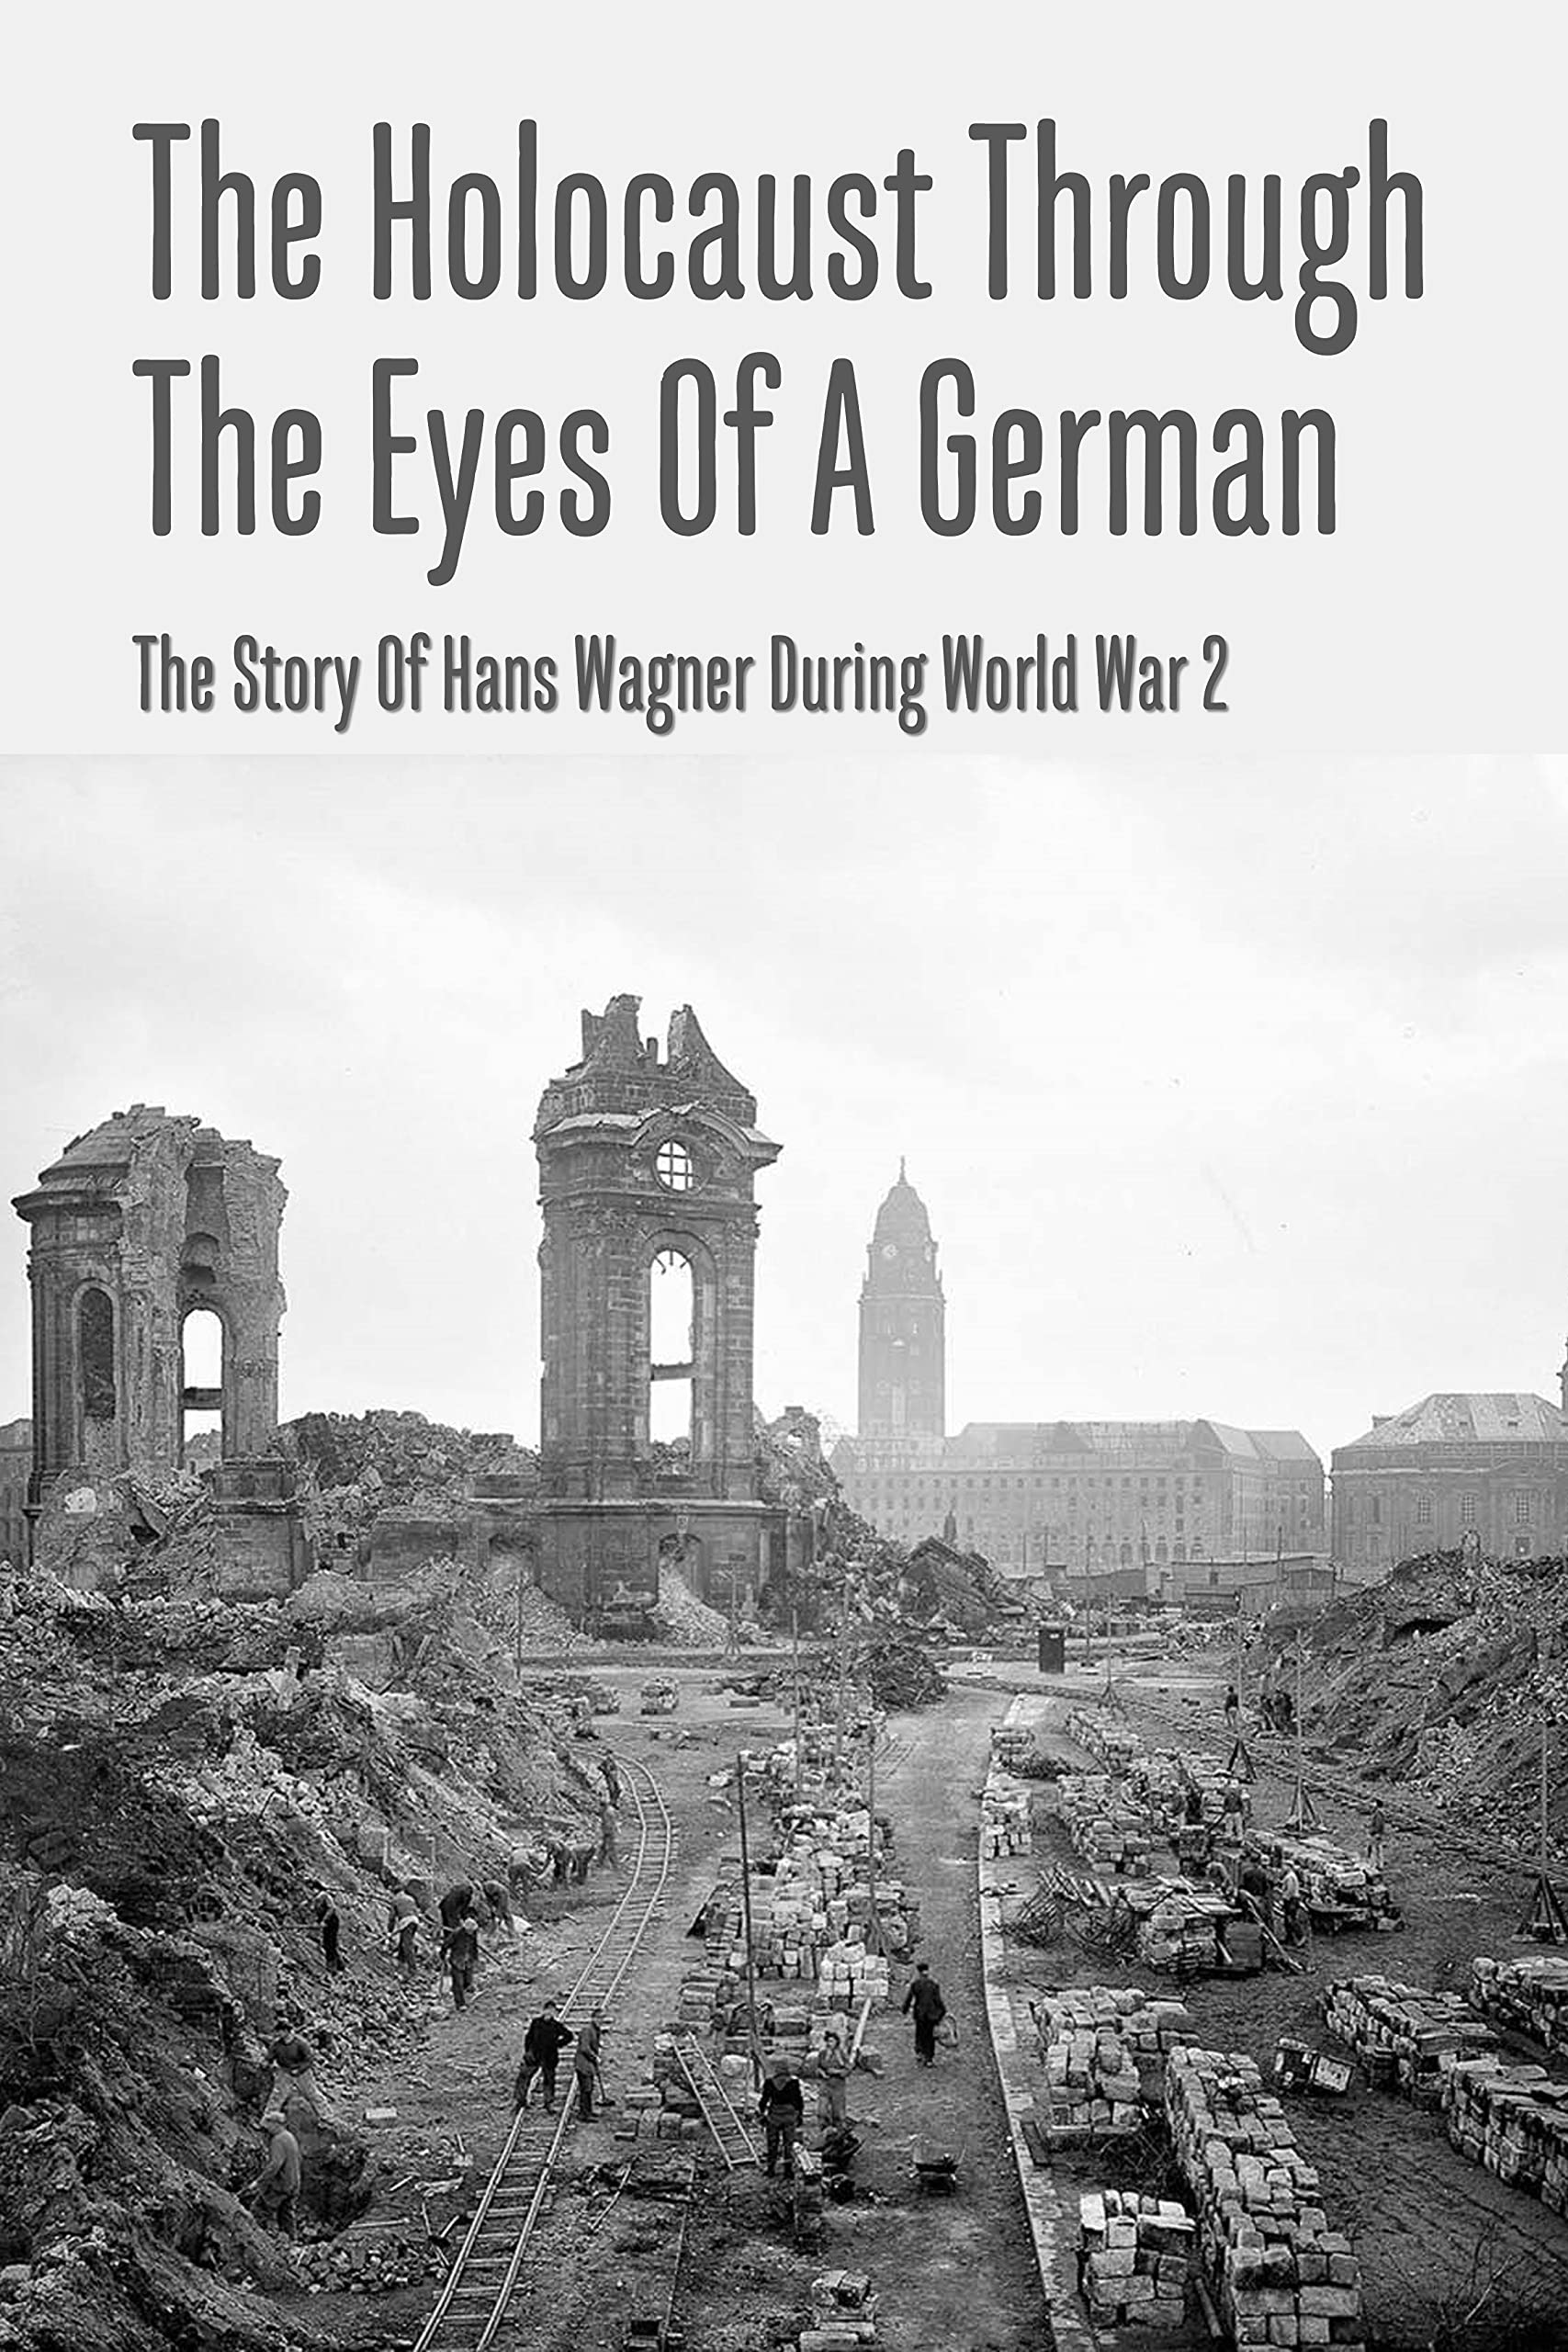 The Holocaust Through The Eyes Of A German: The Story Of Hans Wagner During World War 2: World War 2 Historical Fiction